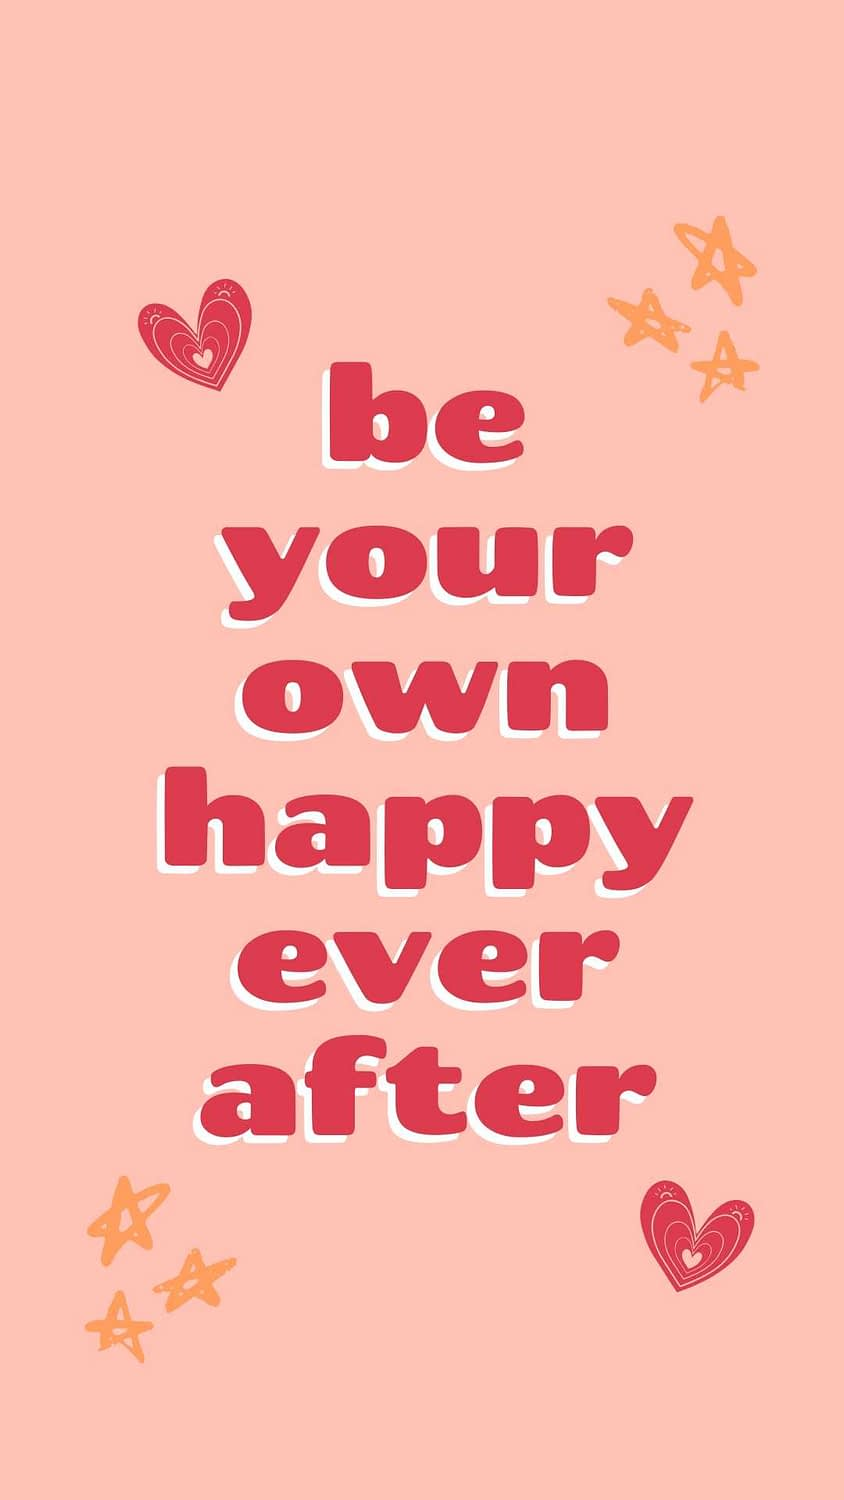 Be Your Own happy ever after iPhone wallpaper background